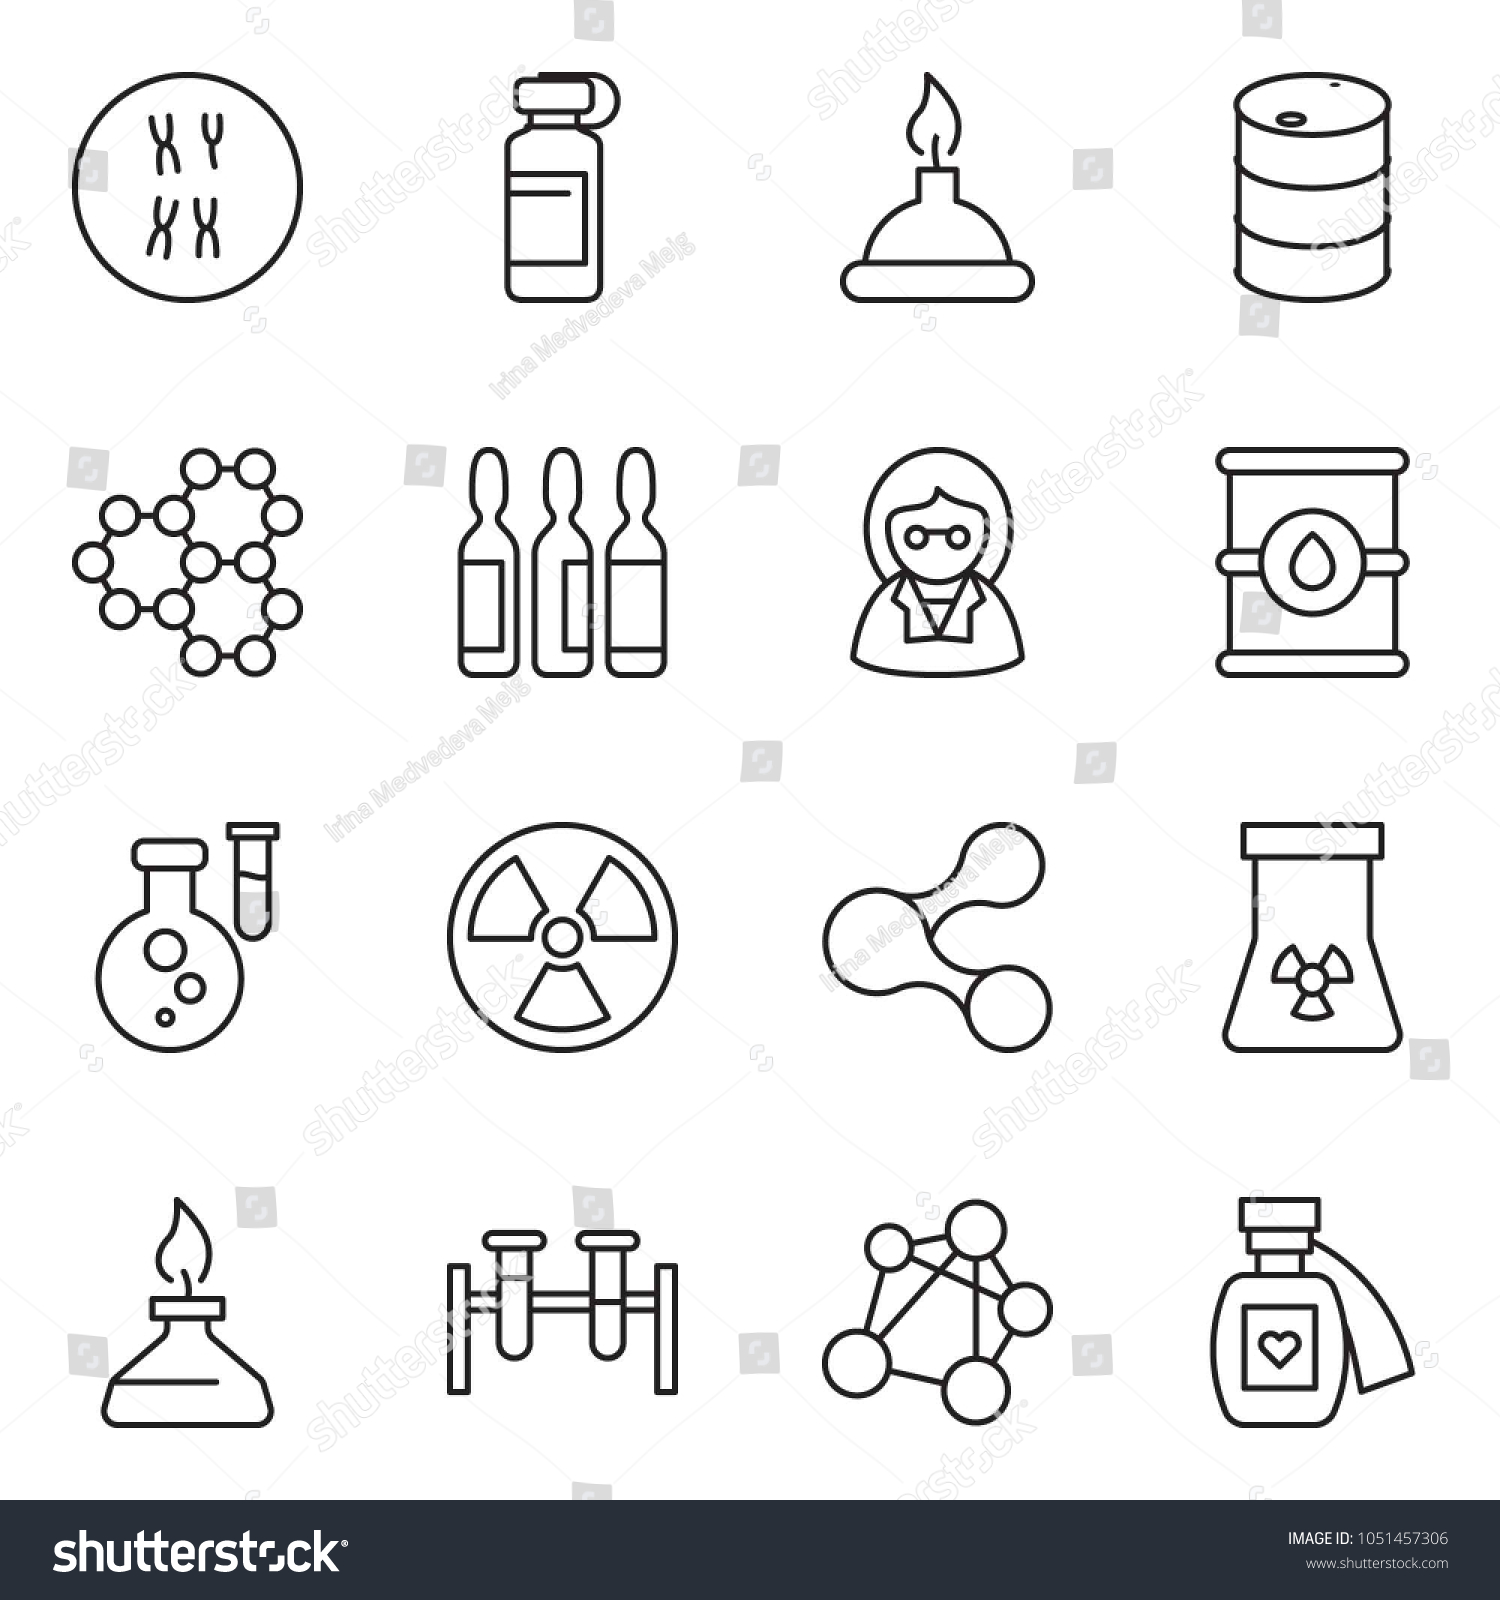 Chromosome Set Thin Line Icon Set Barrel Vector Stock Vector Royalty Free